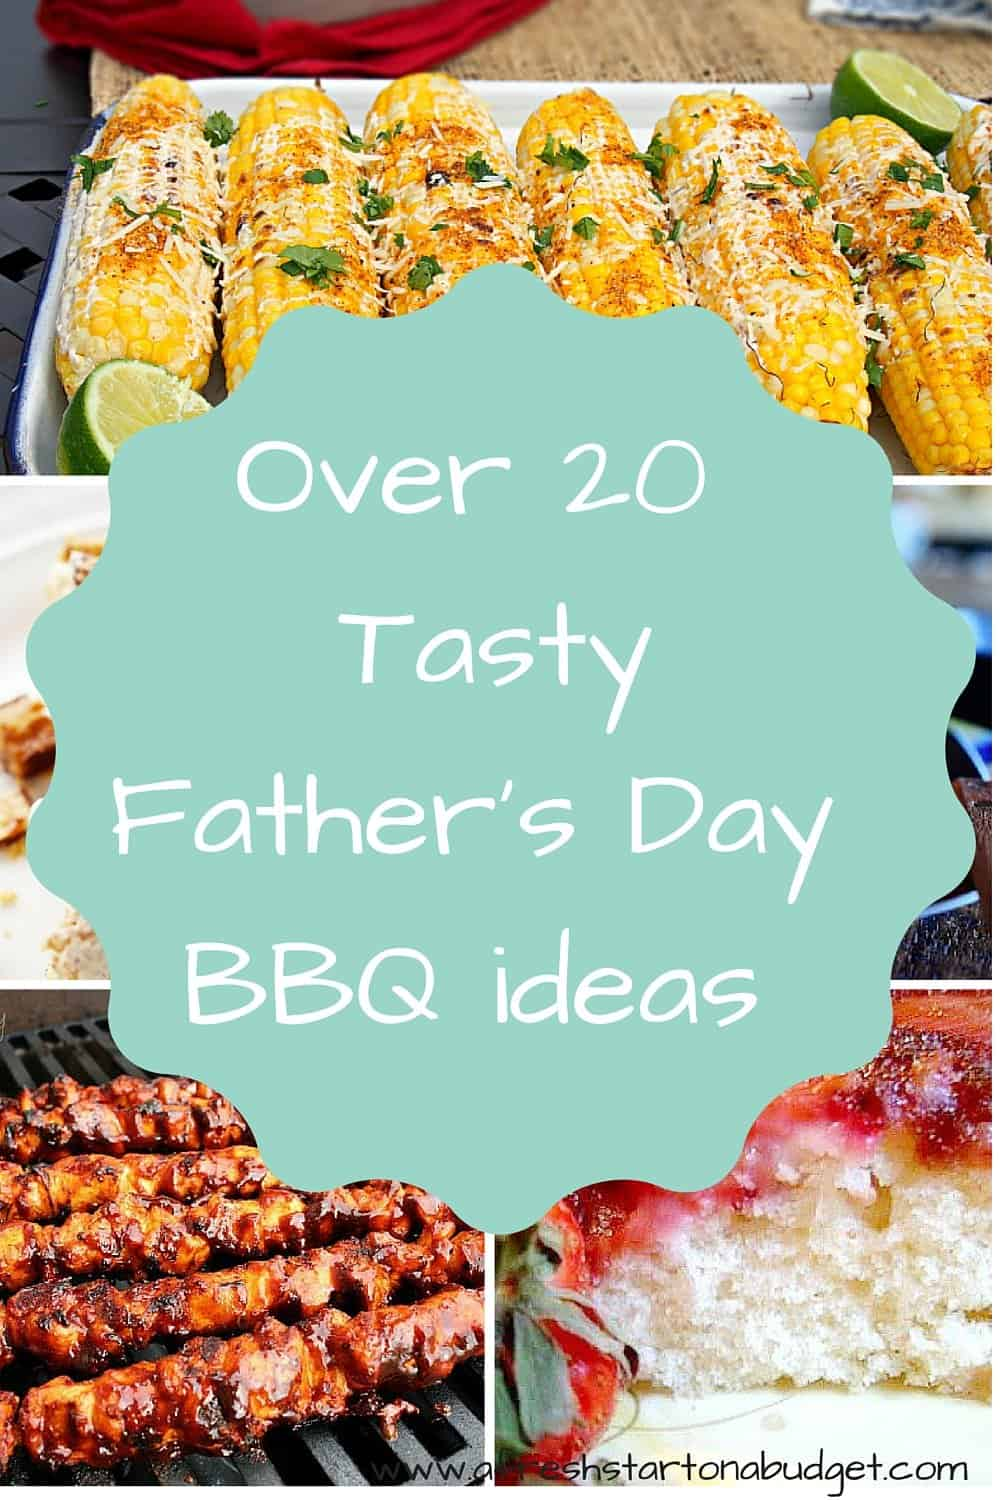 Over 20 Tasty Father's Day BBQ ideas